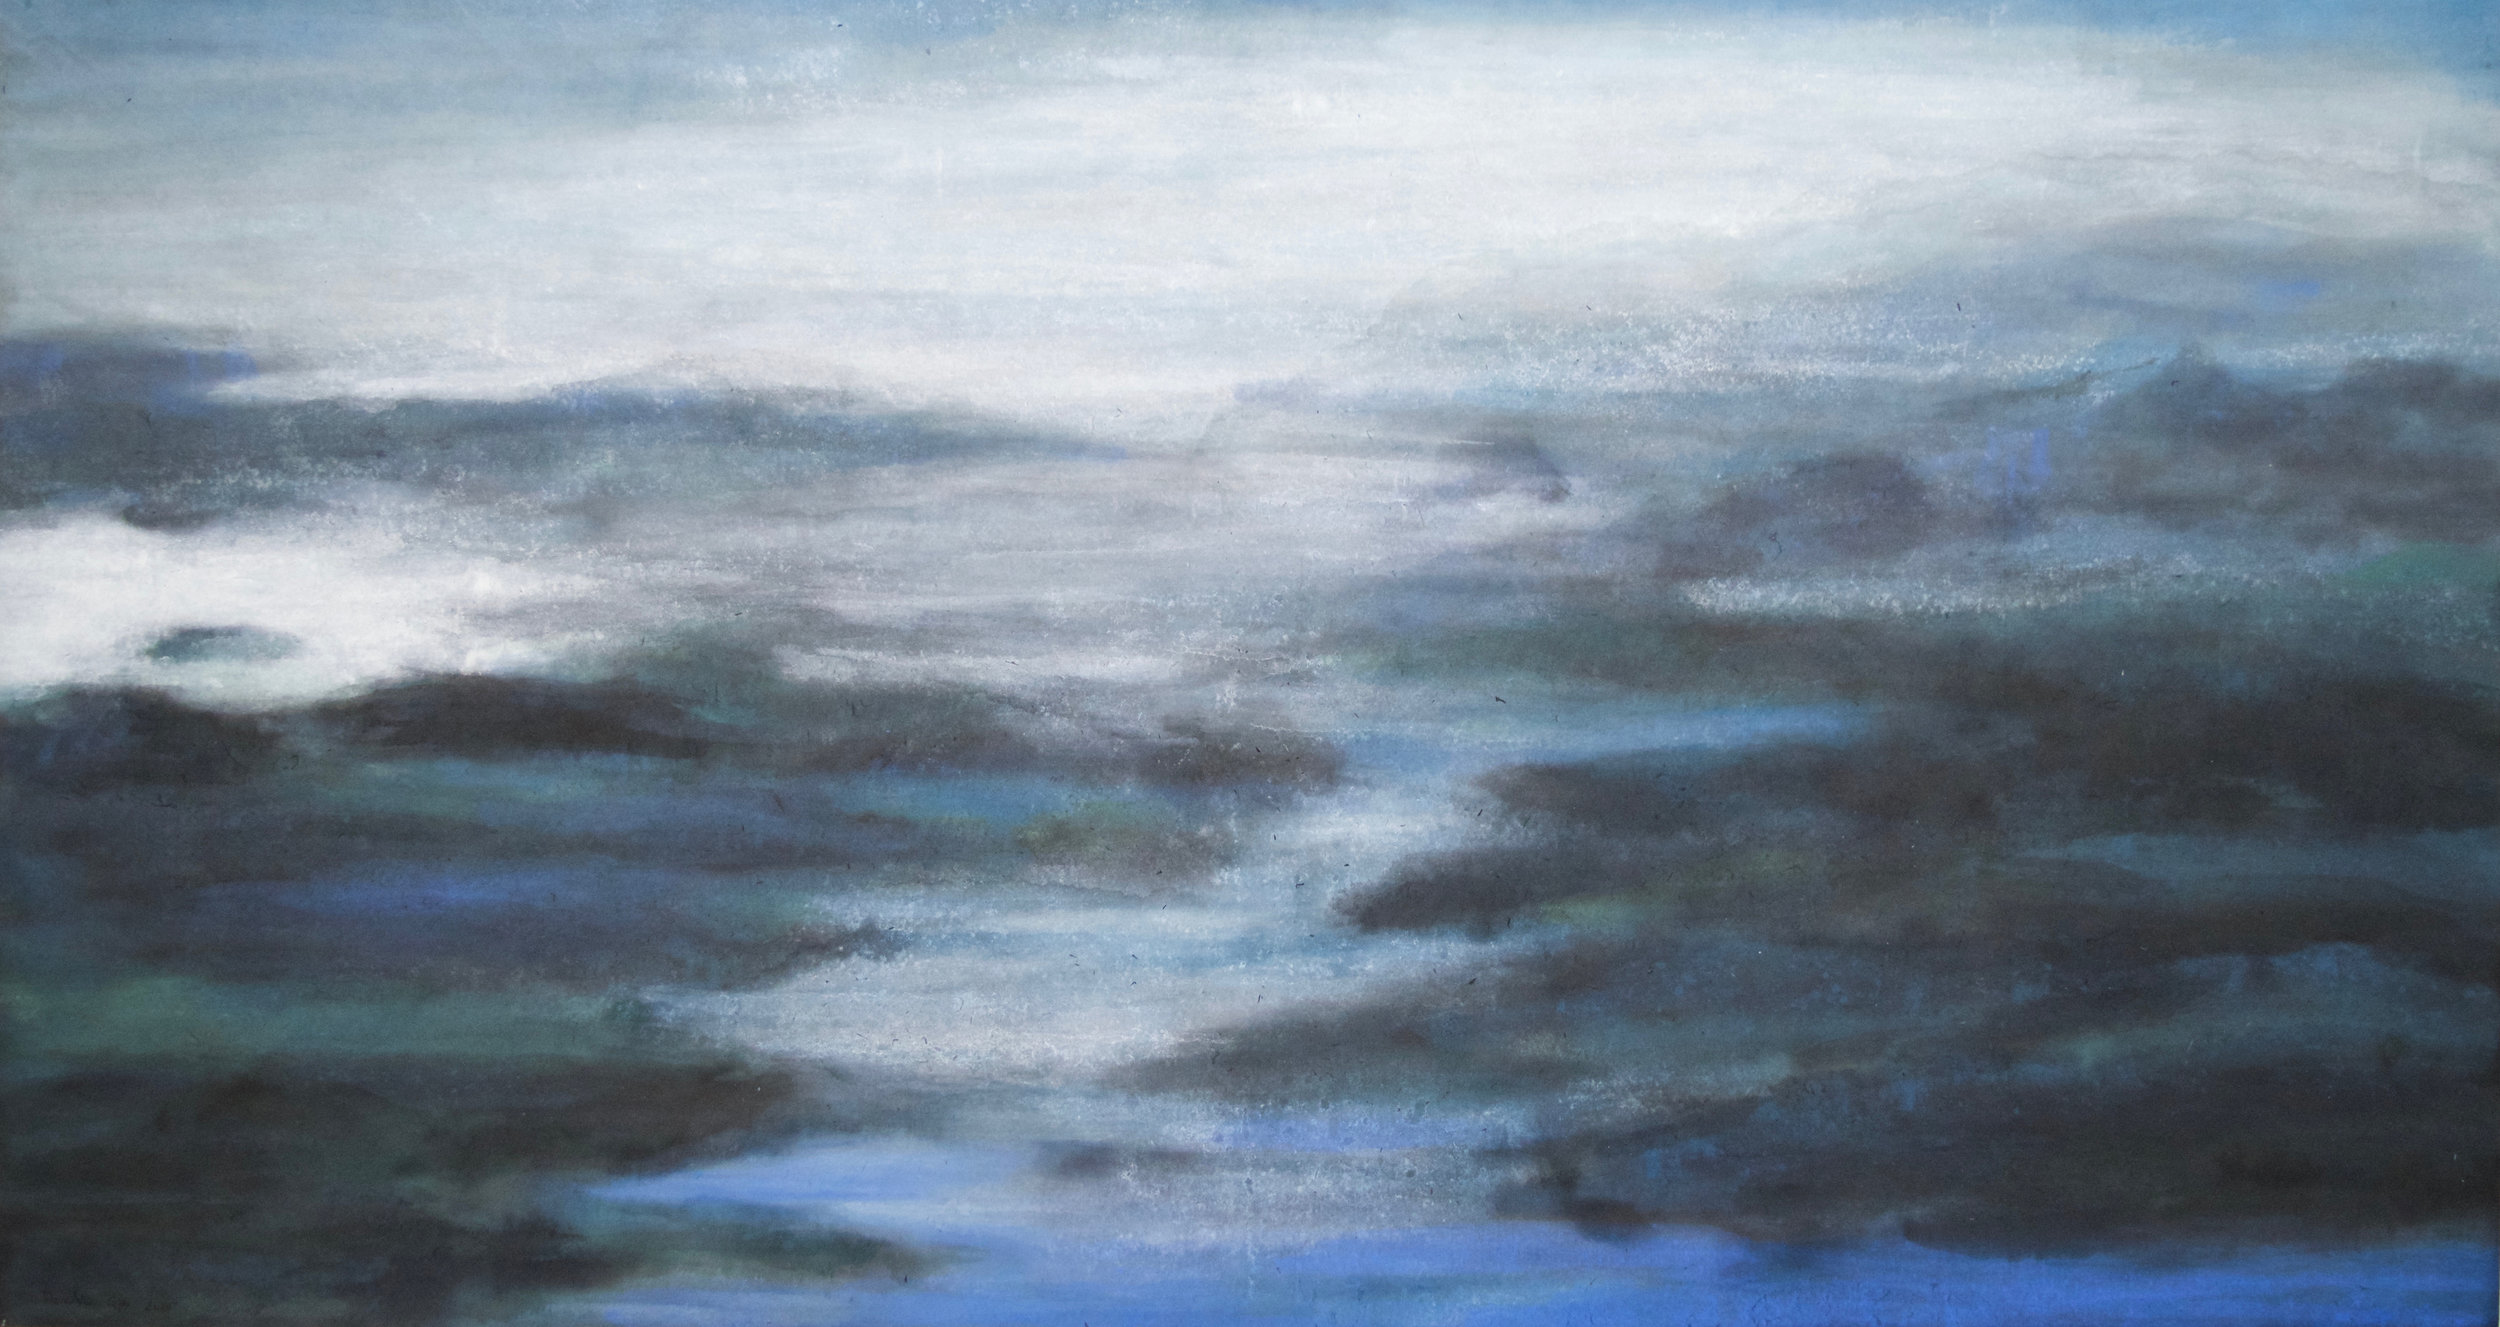 """The Sippewissett marsh 31""""x58"""", Watercolor on rice paper, 2016."""